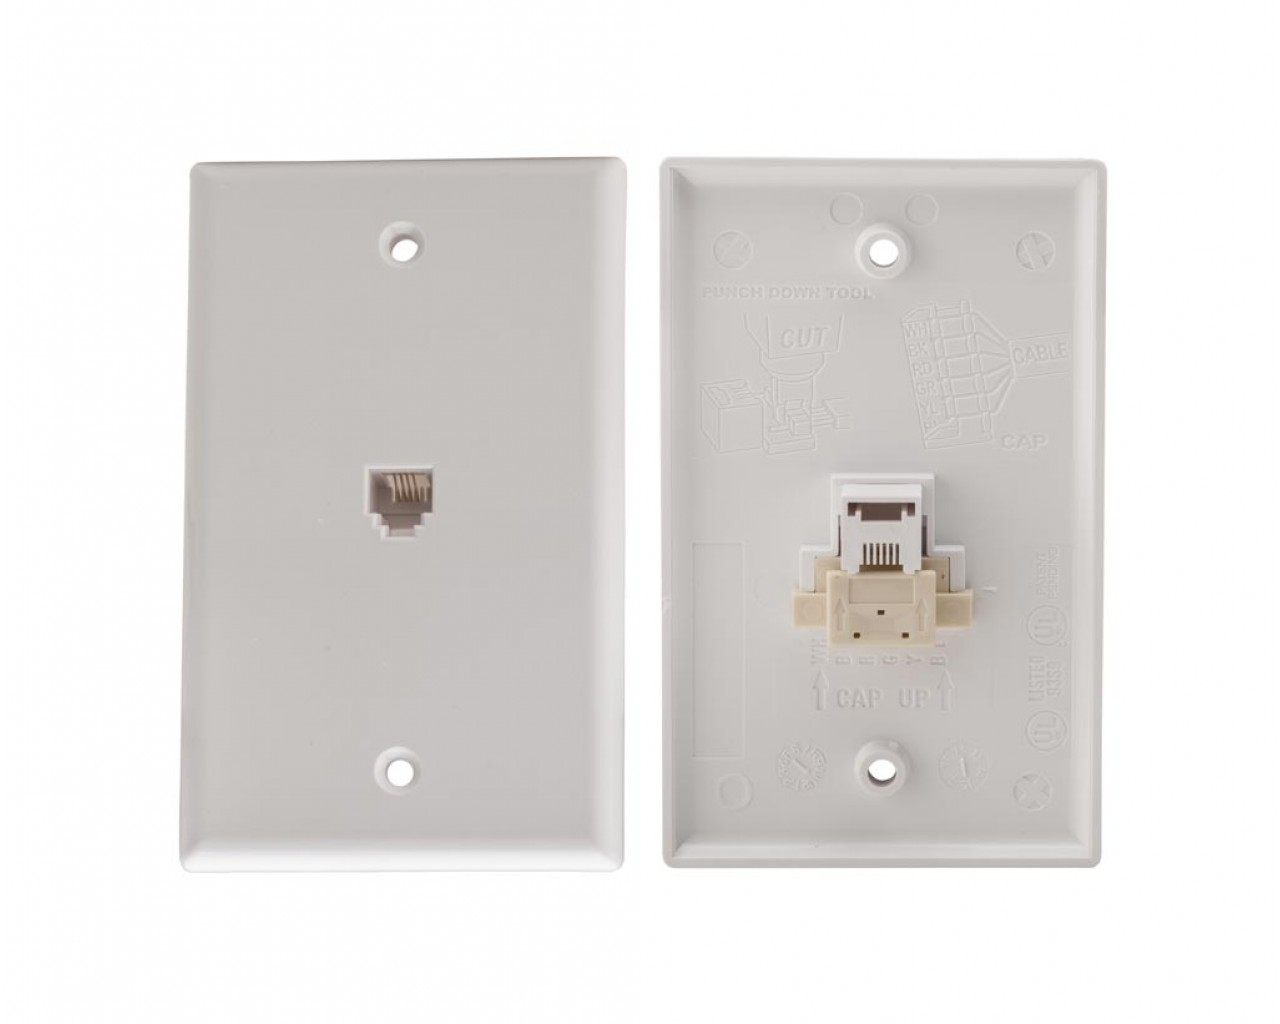 hight resolution of 4c quick connect voice flush mount jack white